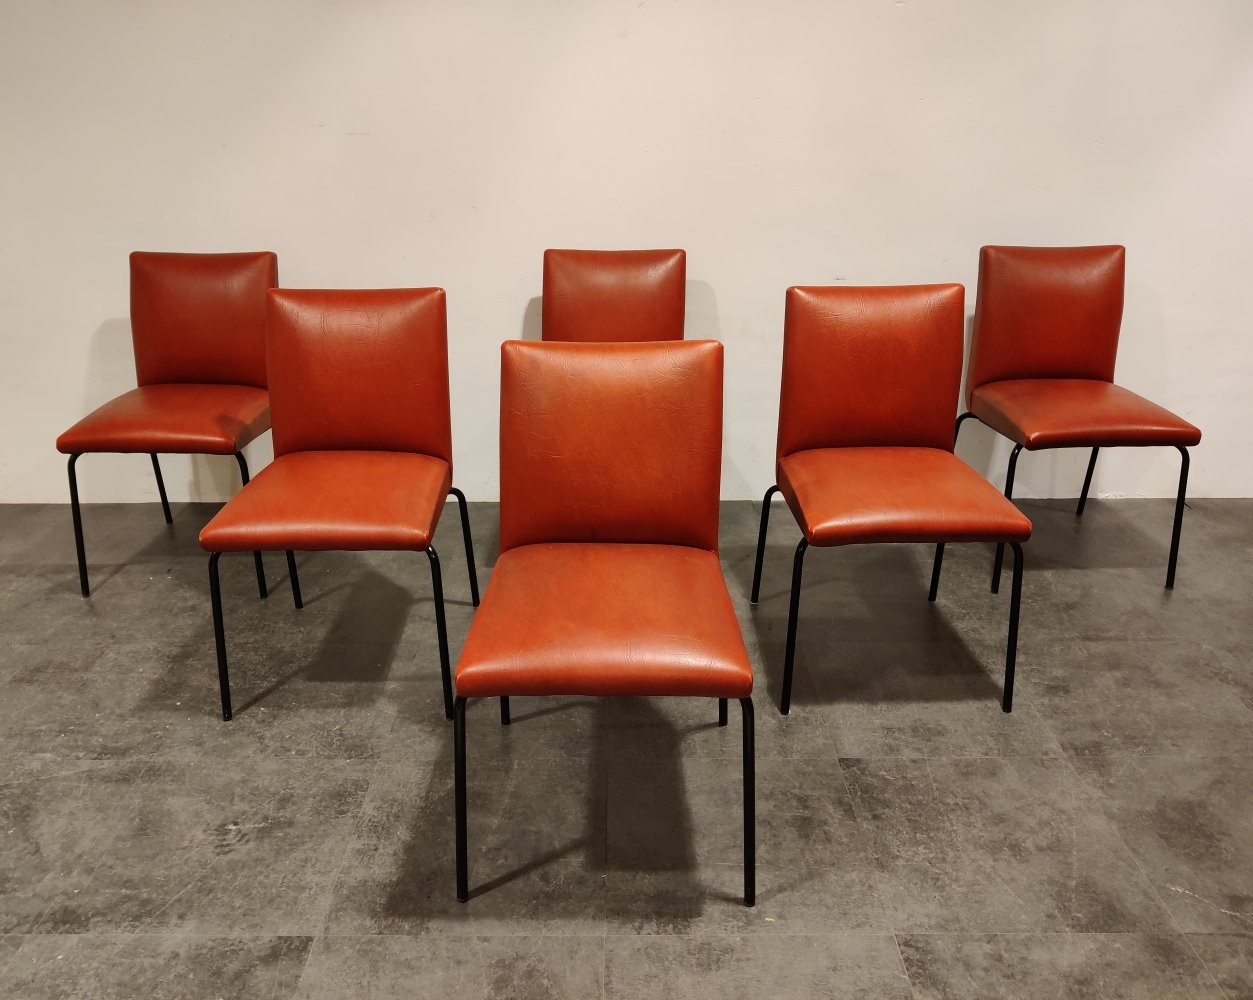 Vintage Robin dining chairs by Pierre Guariche for Meurop, France 1960